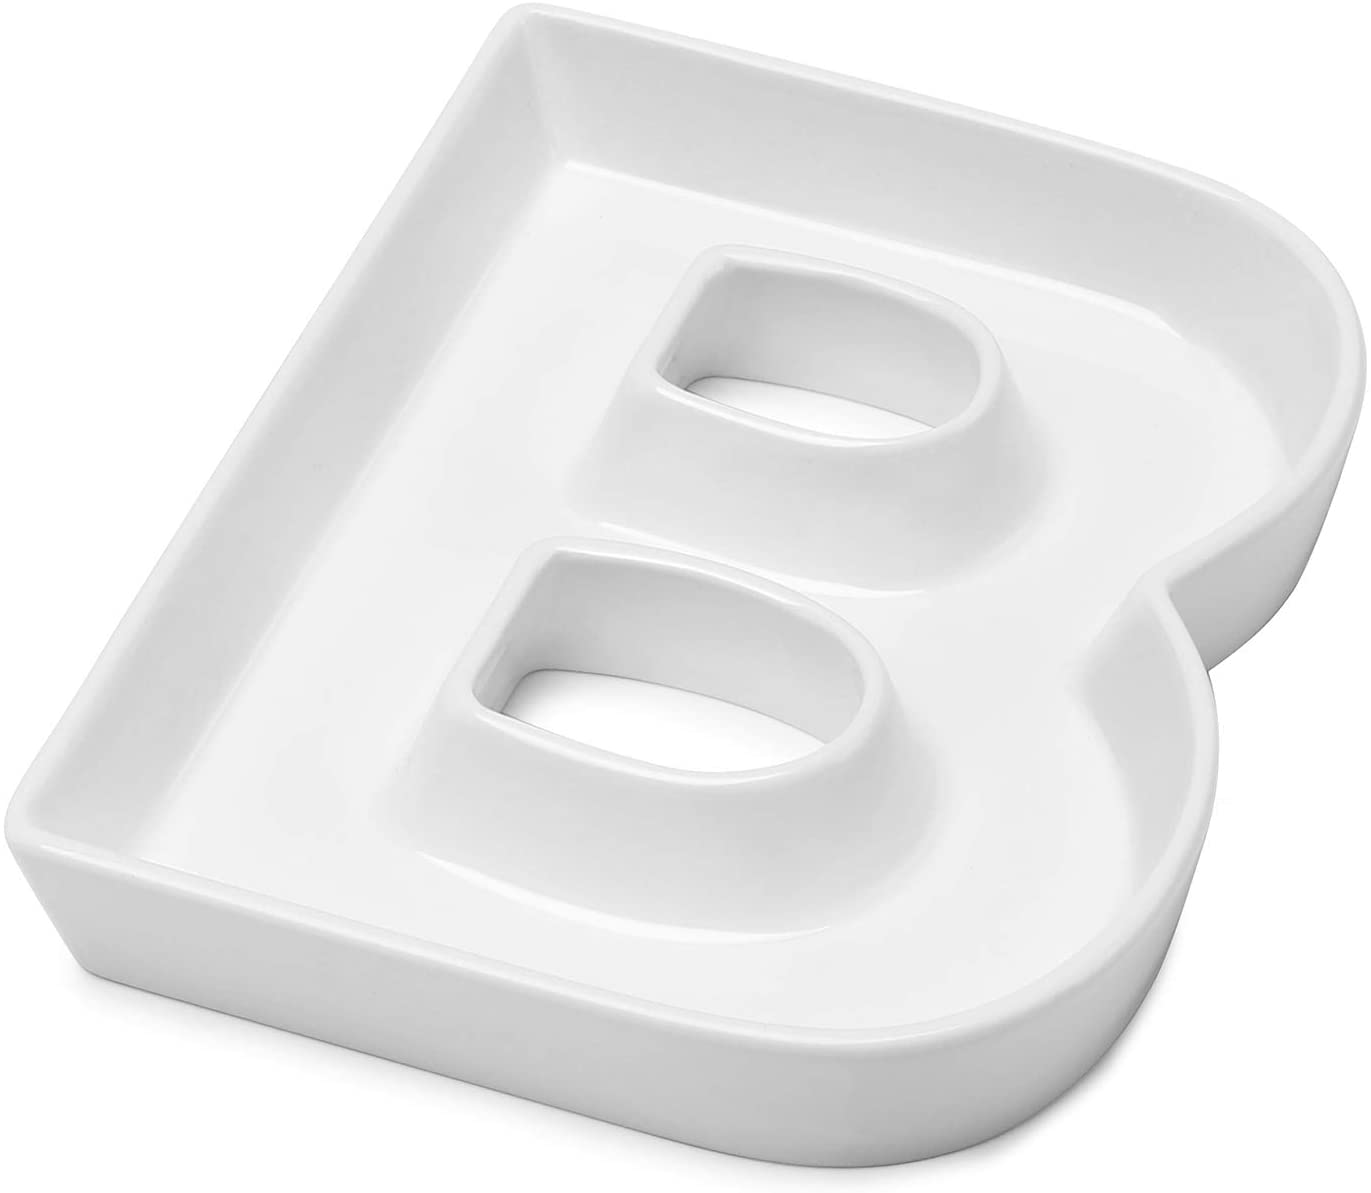 Sweese 708.902 Porcelain Letter Candy Dish, Letter B, White - Decorative Serving Dish for Weddings, Anniversaries, Birthday Party, Table Decoration